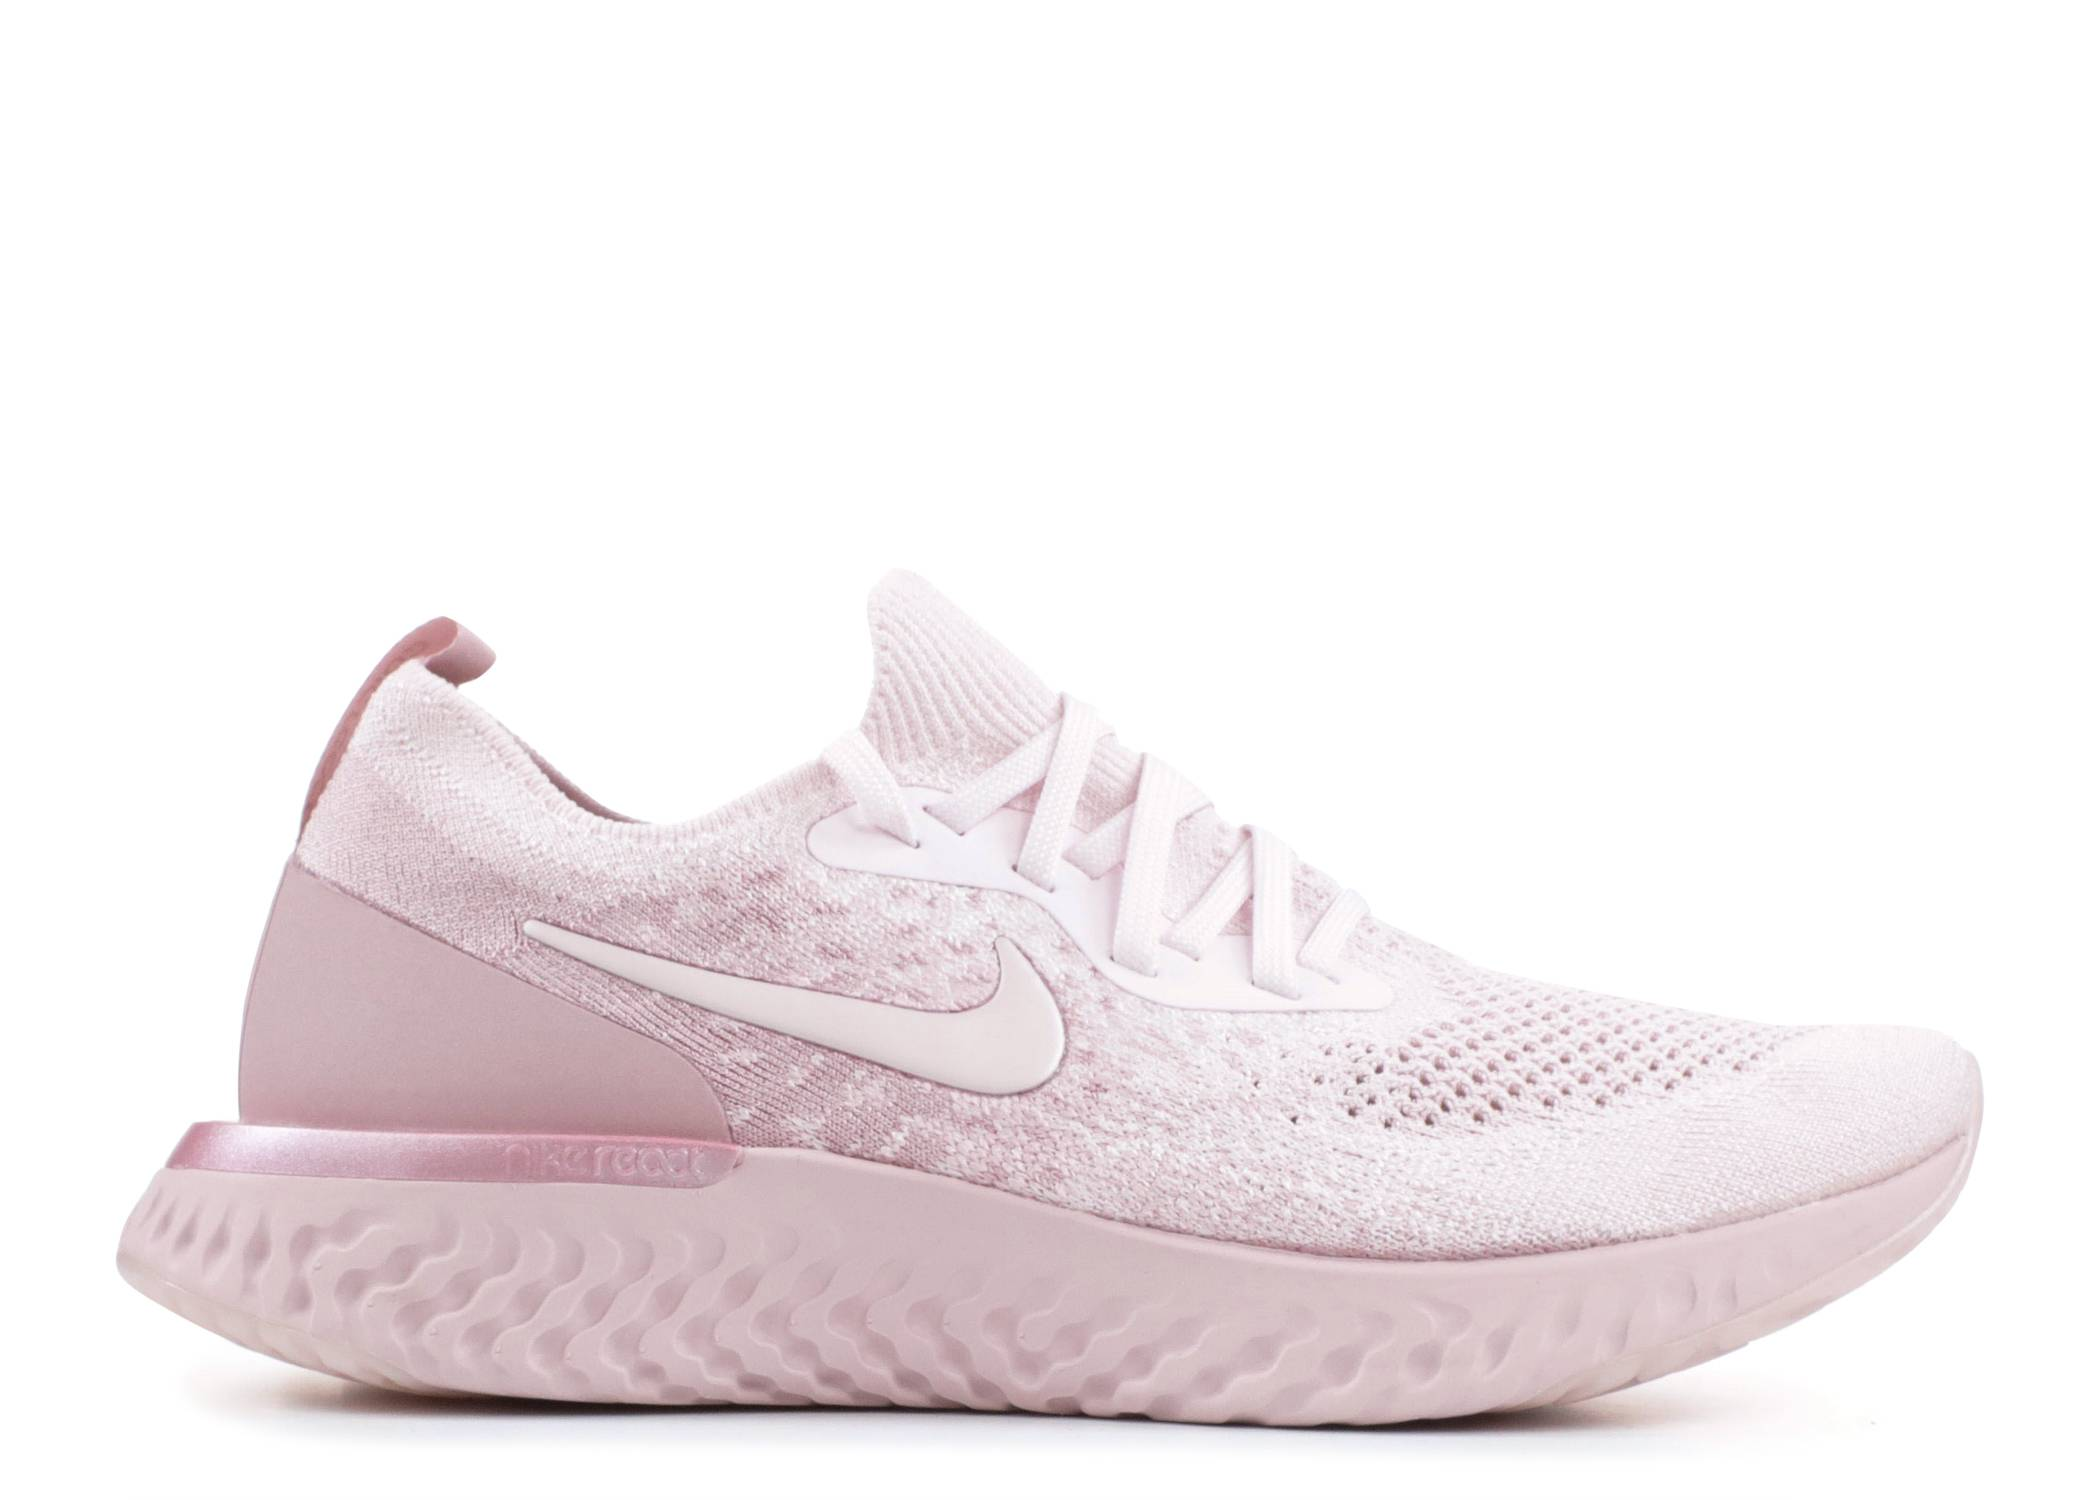 c630cfe0e4dd WMNS Nike Epic React Flyknit - Nike - AQ0070 600 - pearl pink pearl ...